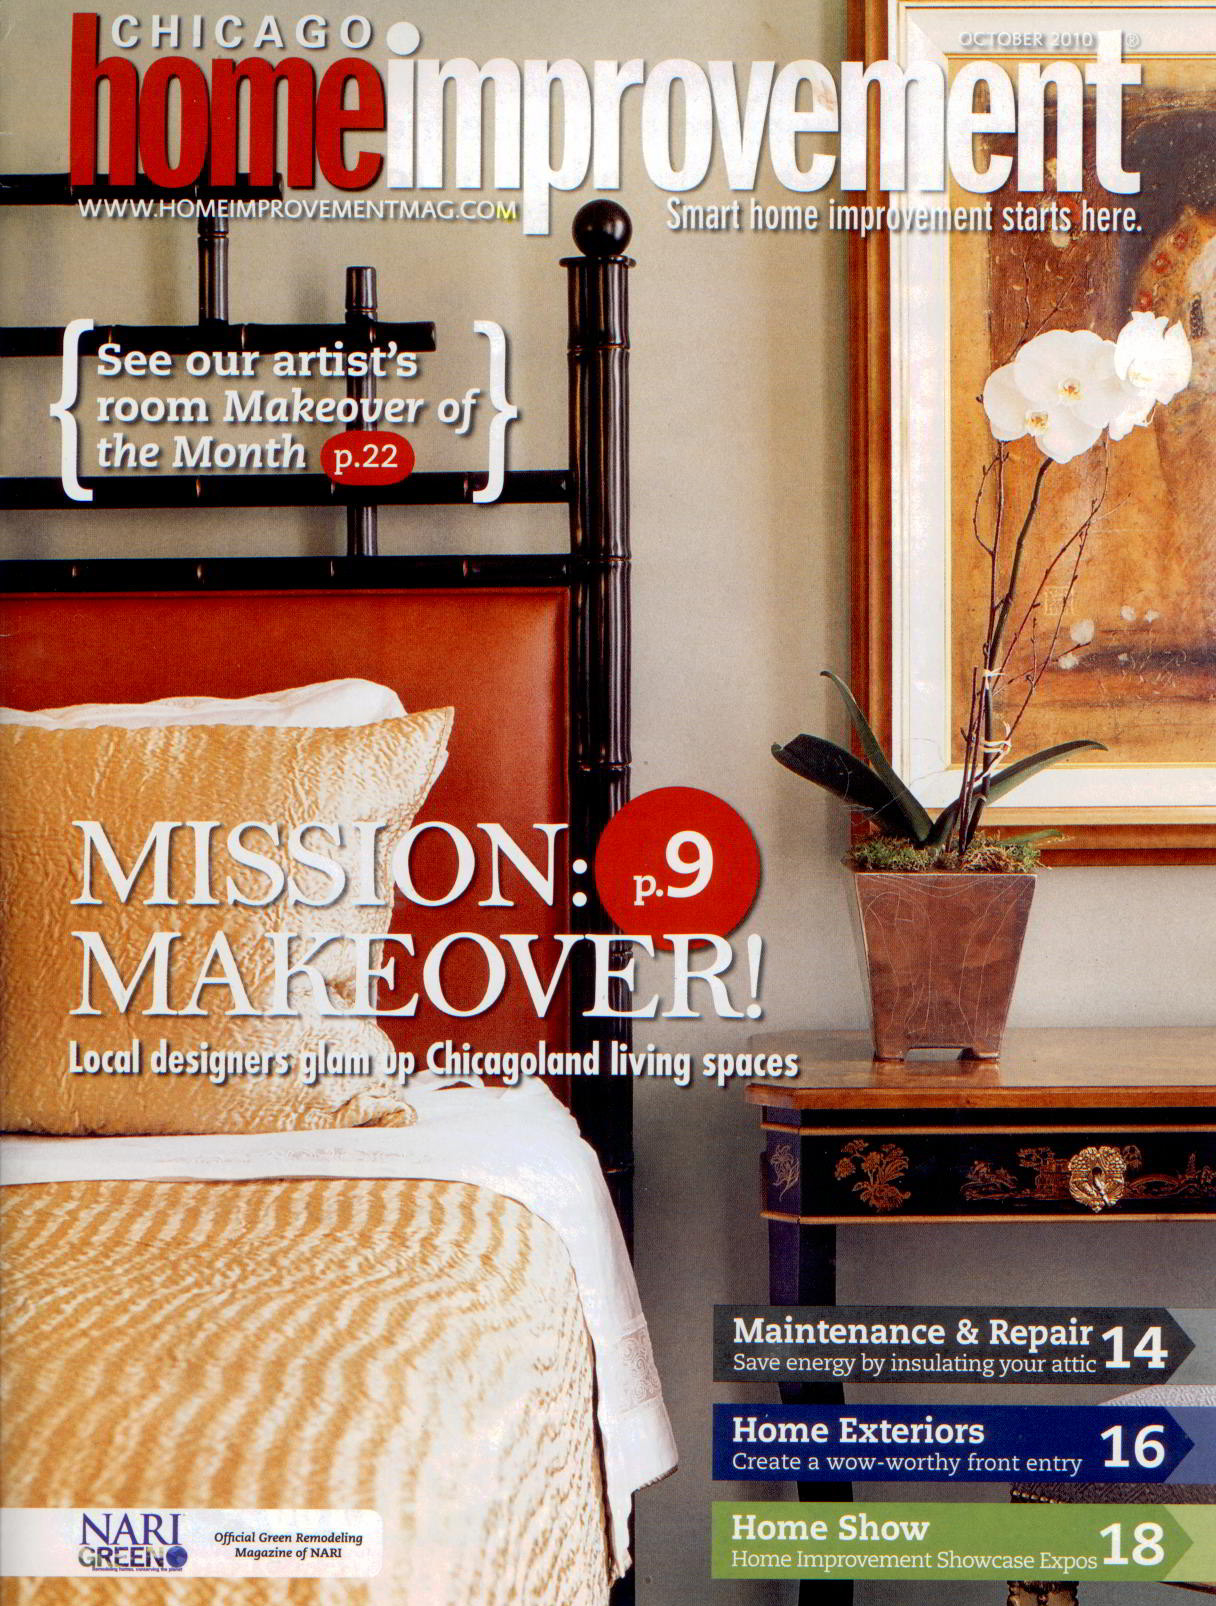 Chicago Home Improvement Magazine Cover